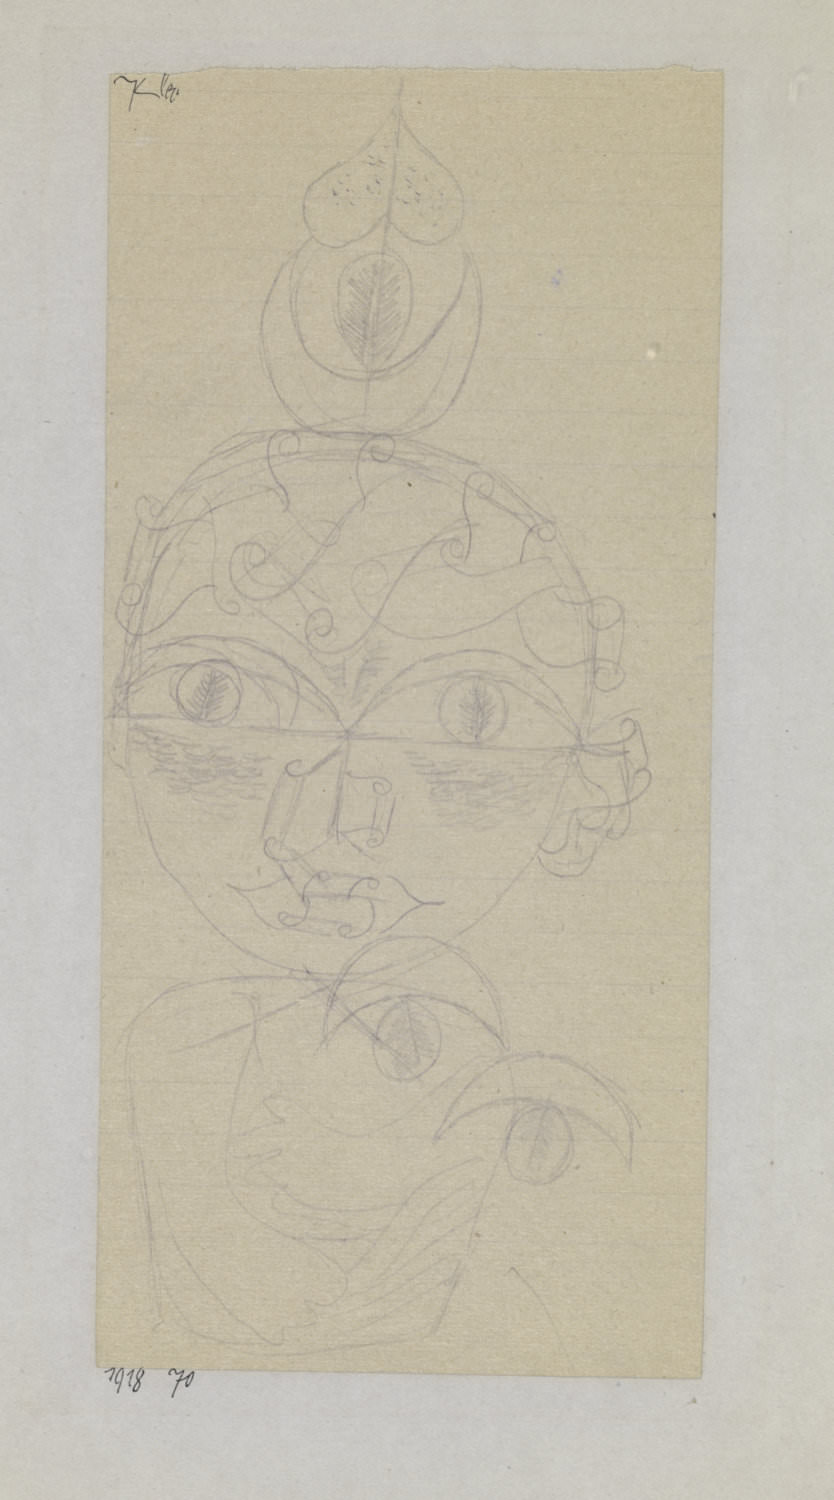 Paul Klee,  Kind , 1918, 70, indelible pencil on paper on cardboard, 22,6 x 10,5 cm, Zentrum Paul Klee, Bern © Zentrum Paul Klee, Bern, Bildarchiv